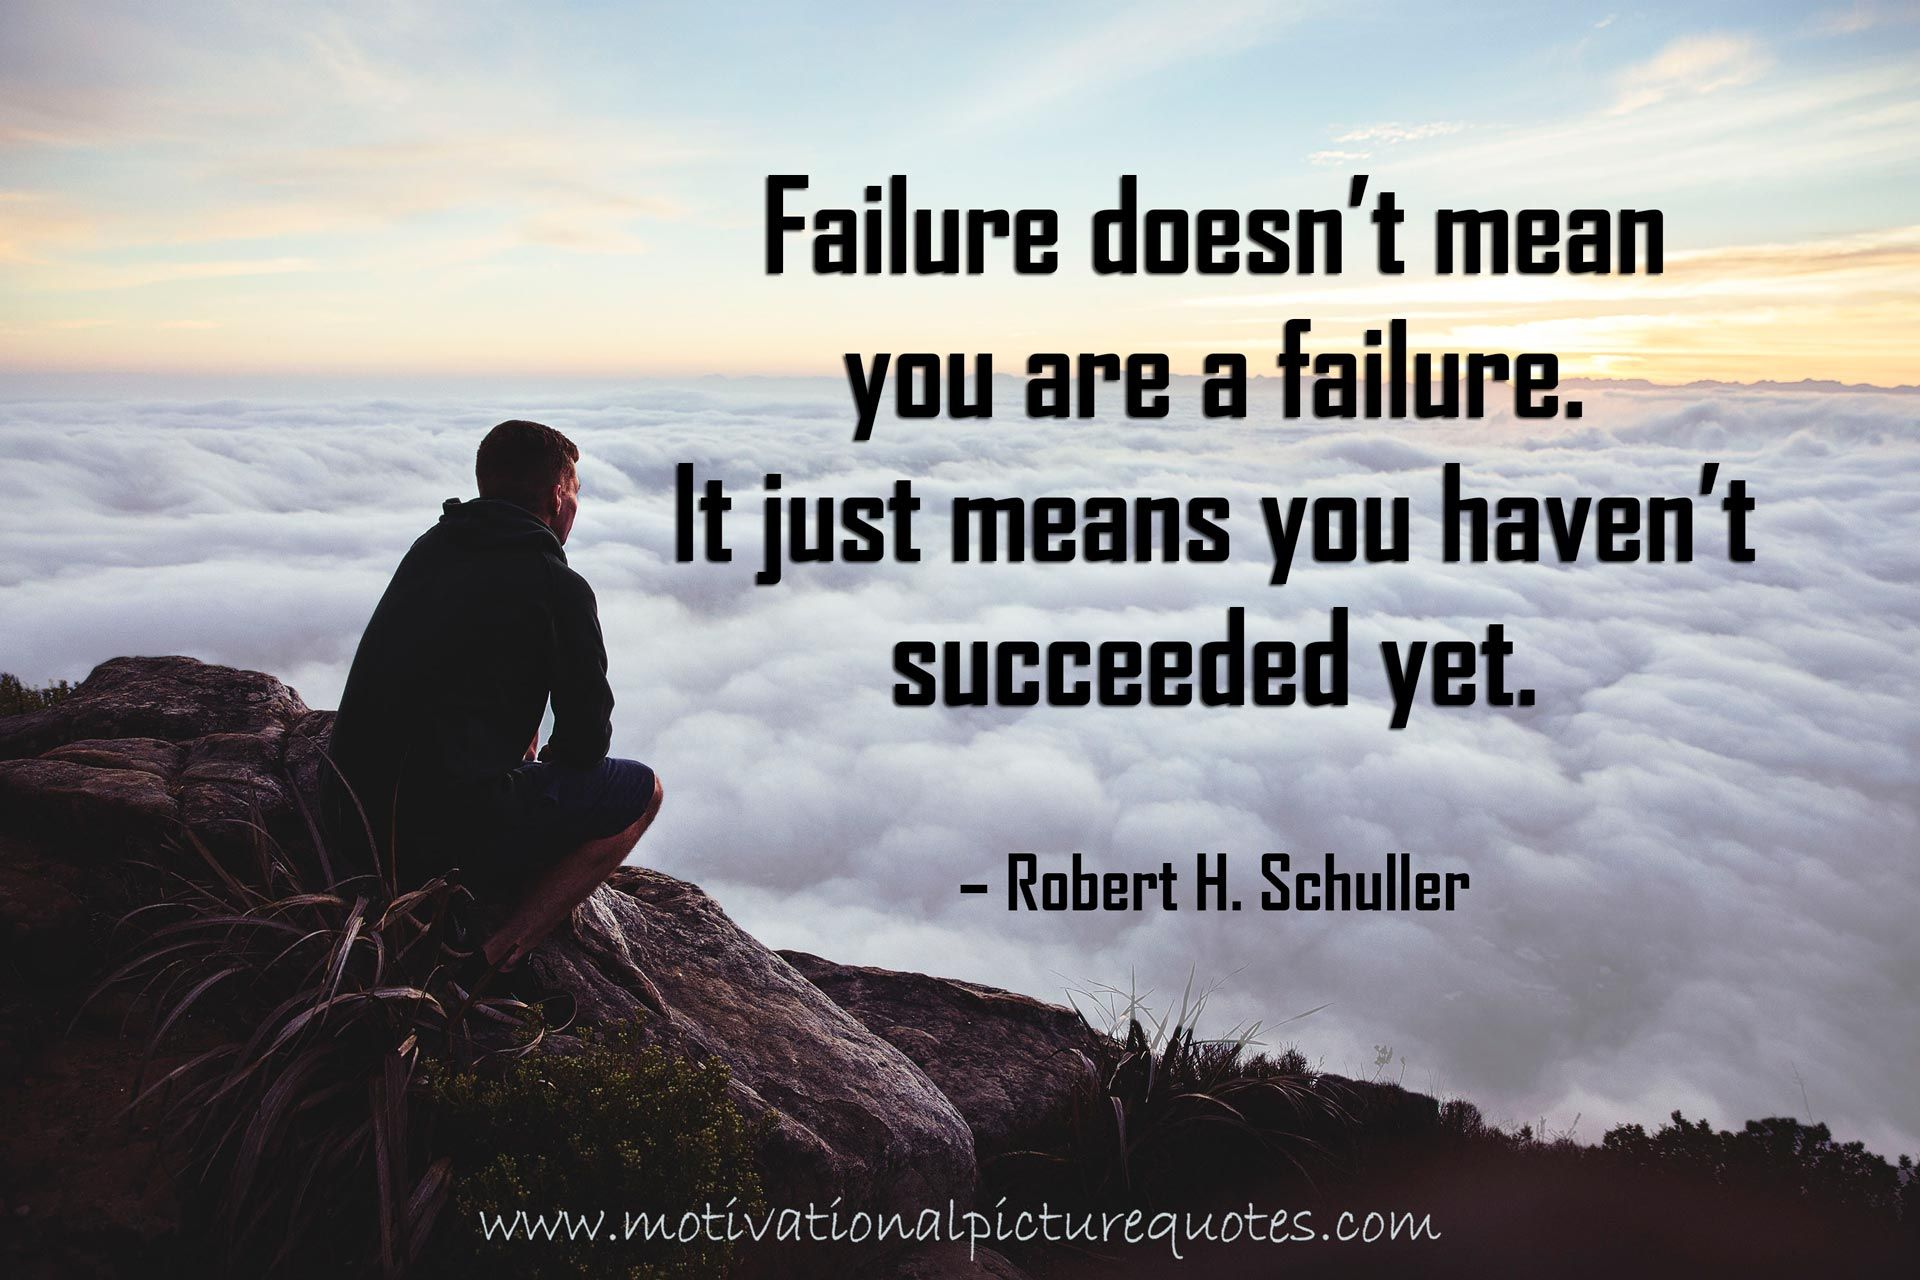 Inspirational Quotes About Overcoming Failure: Robert H Schuller Overcoming Failure Quotes Images